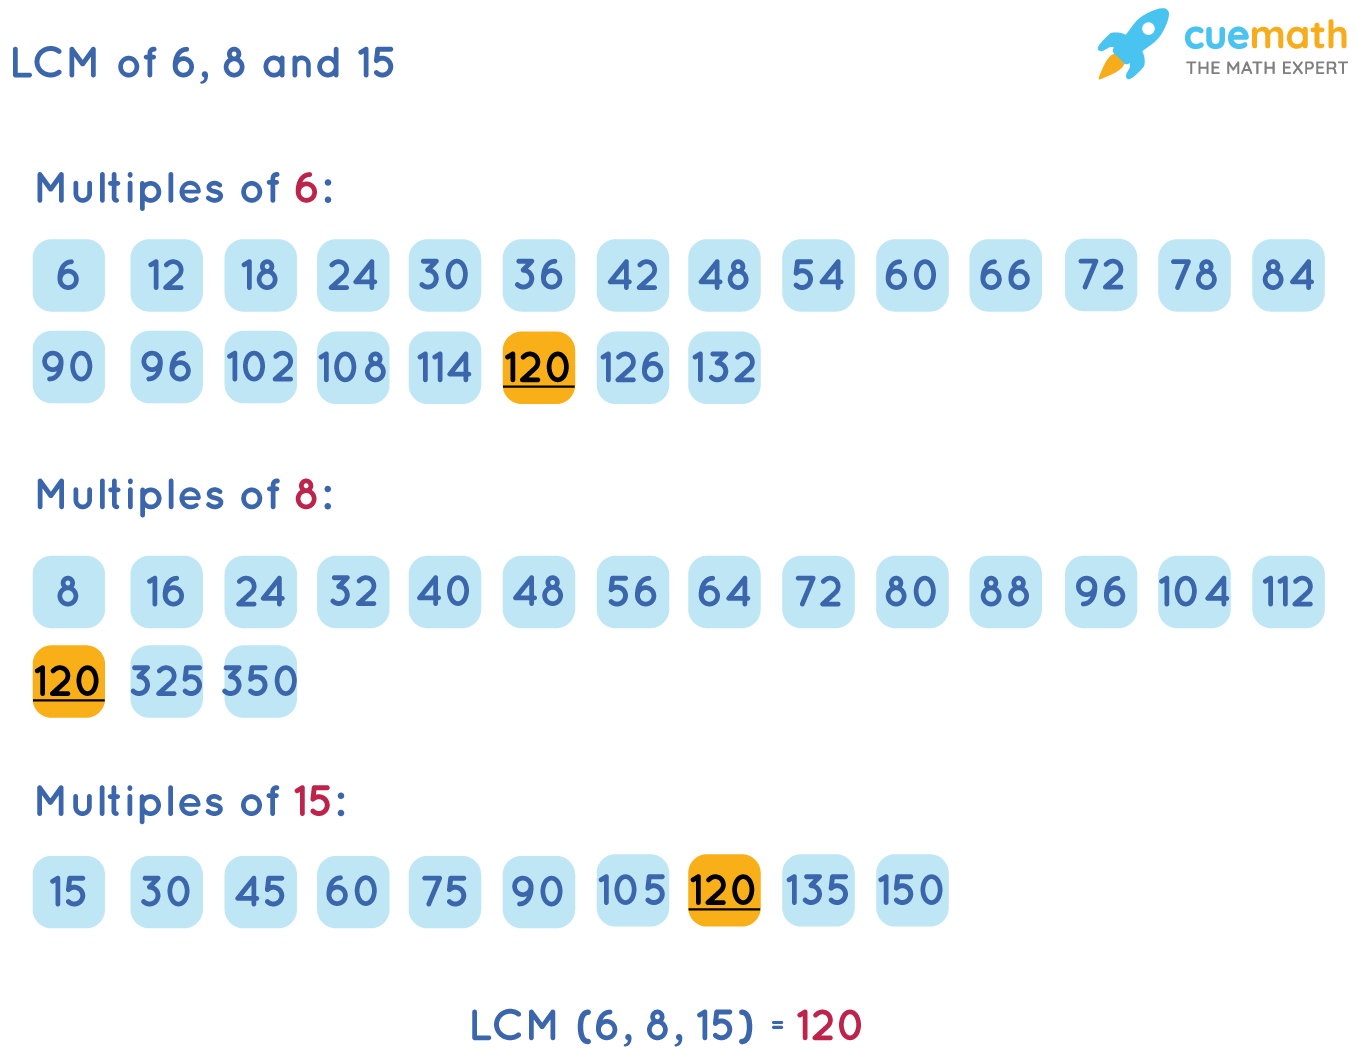 LCM of 6, 8, and 15 by Listing Multiples Method